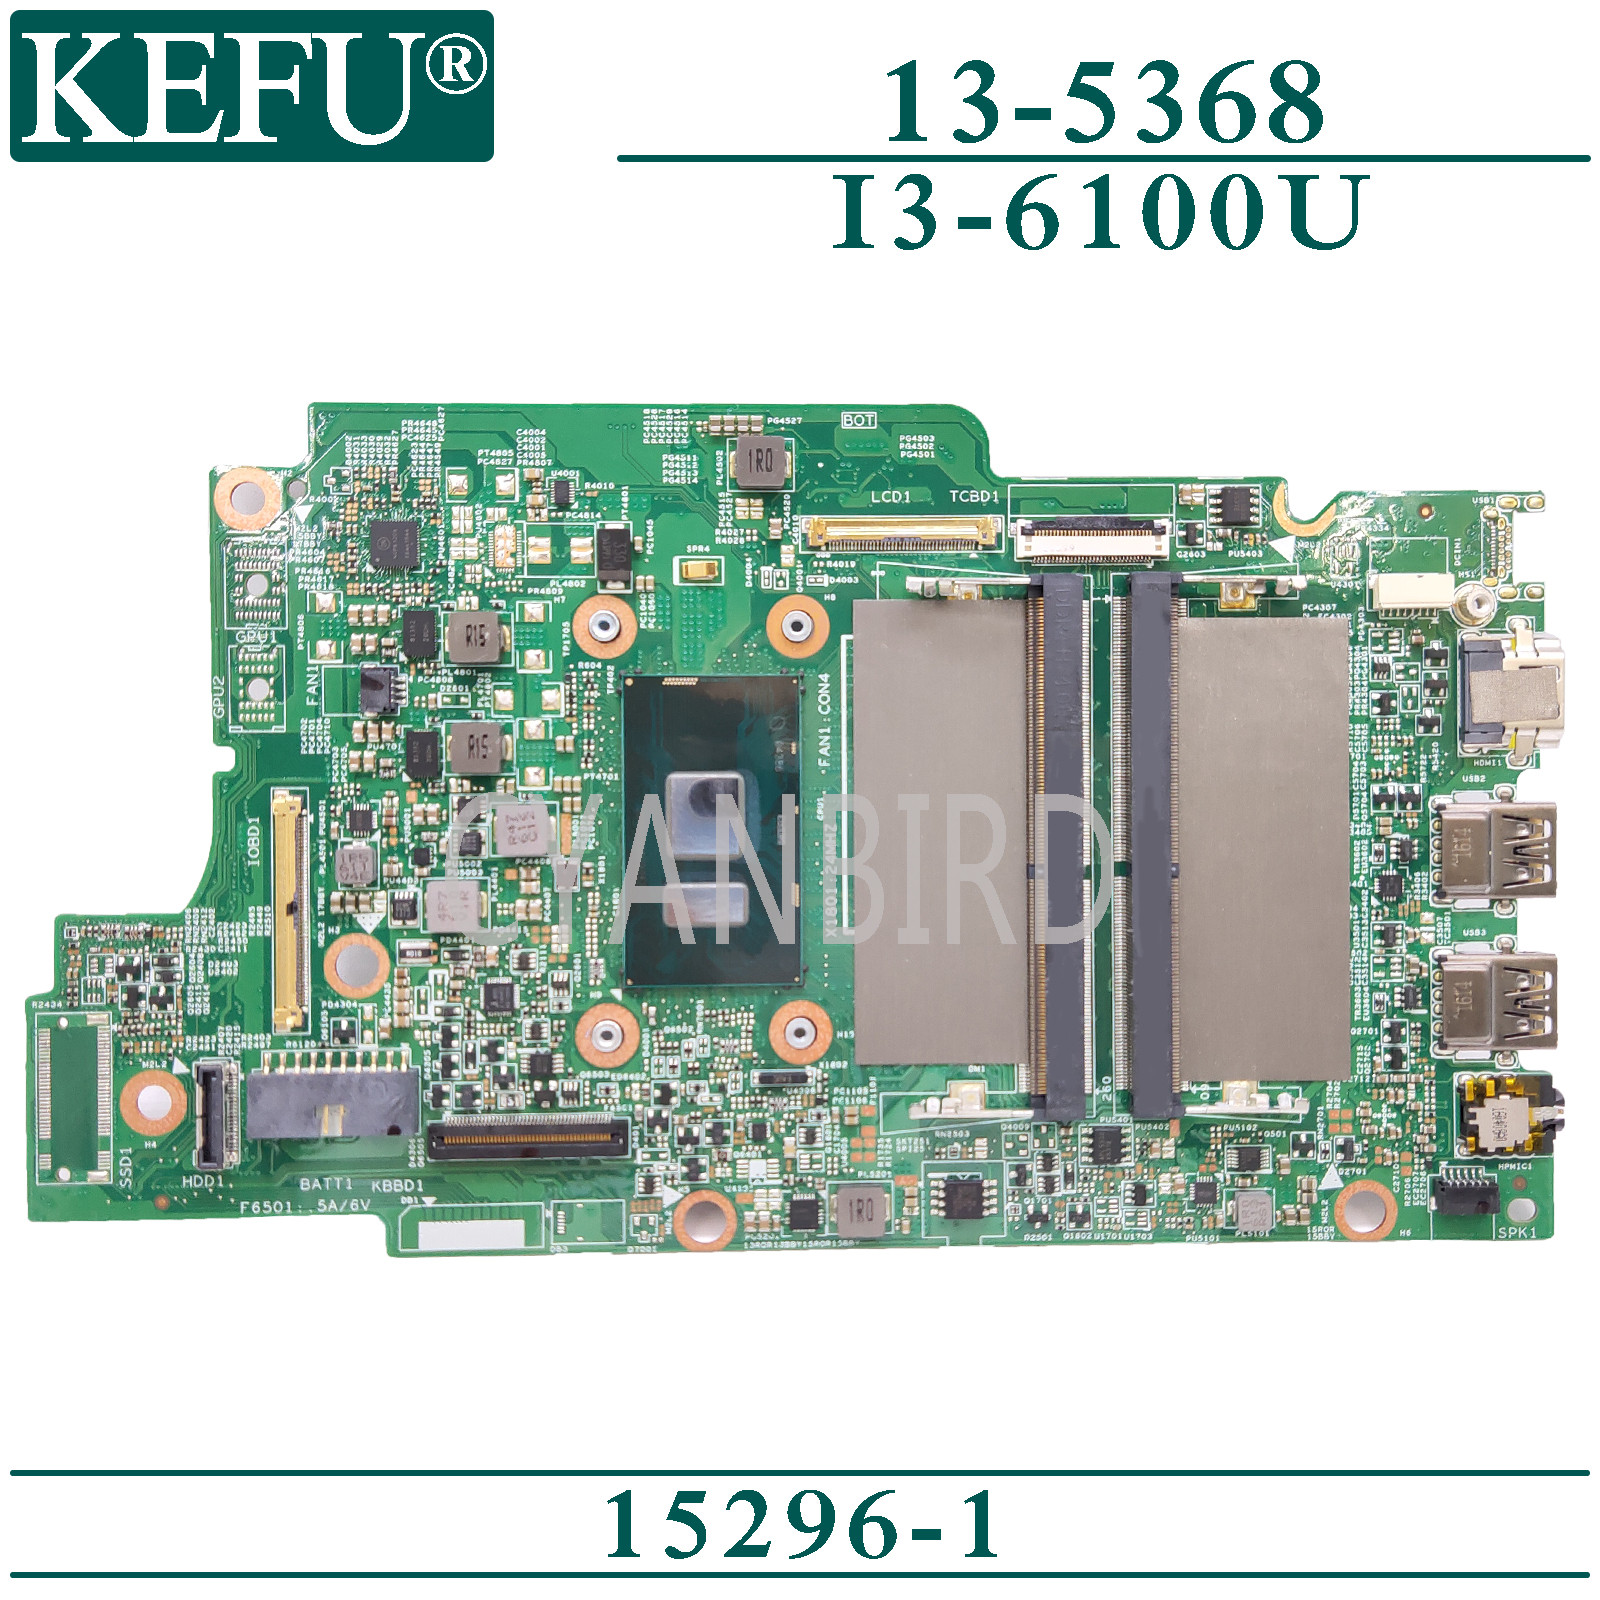 KEFU 15296-1 original mainboard for Dell Inspiron 13-5368 with I3-6100U Laptop motherboard